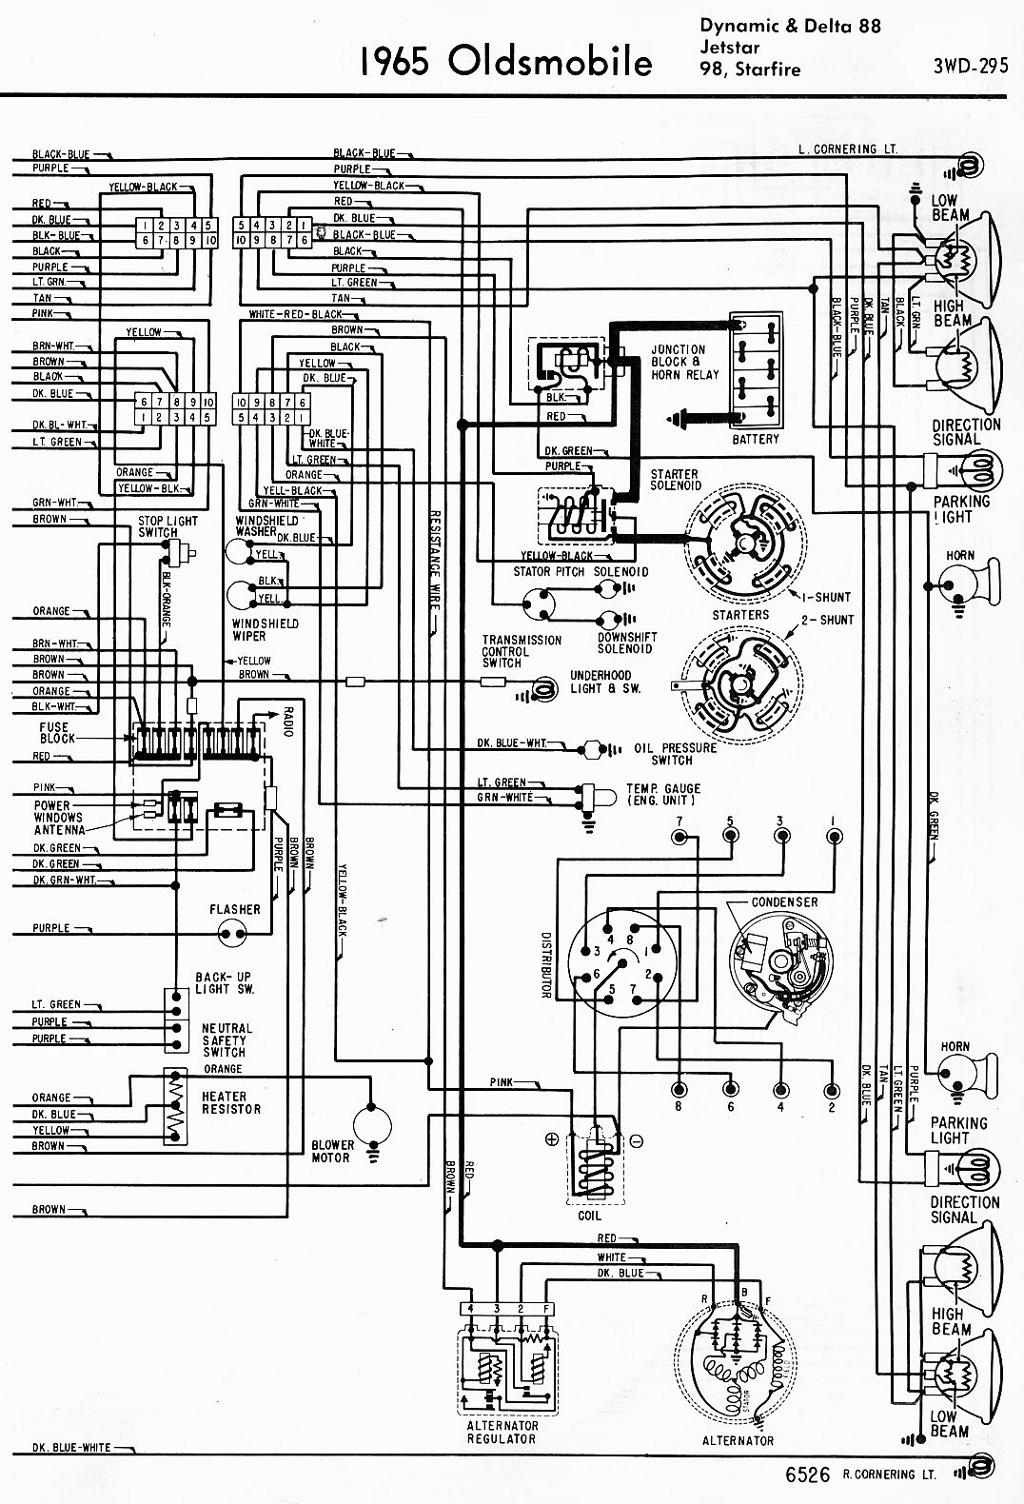 medium resolution of nissan tiida air con wiring diagram wiring schematic 1987 nissan pickup wiring diagram nissan tiida a c